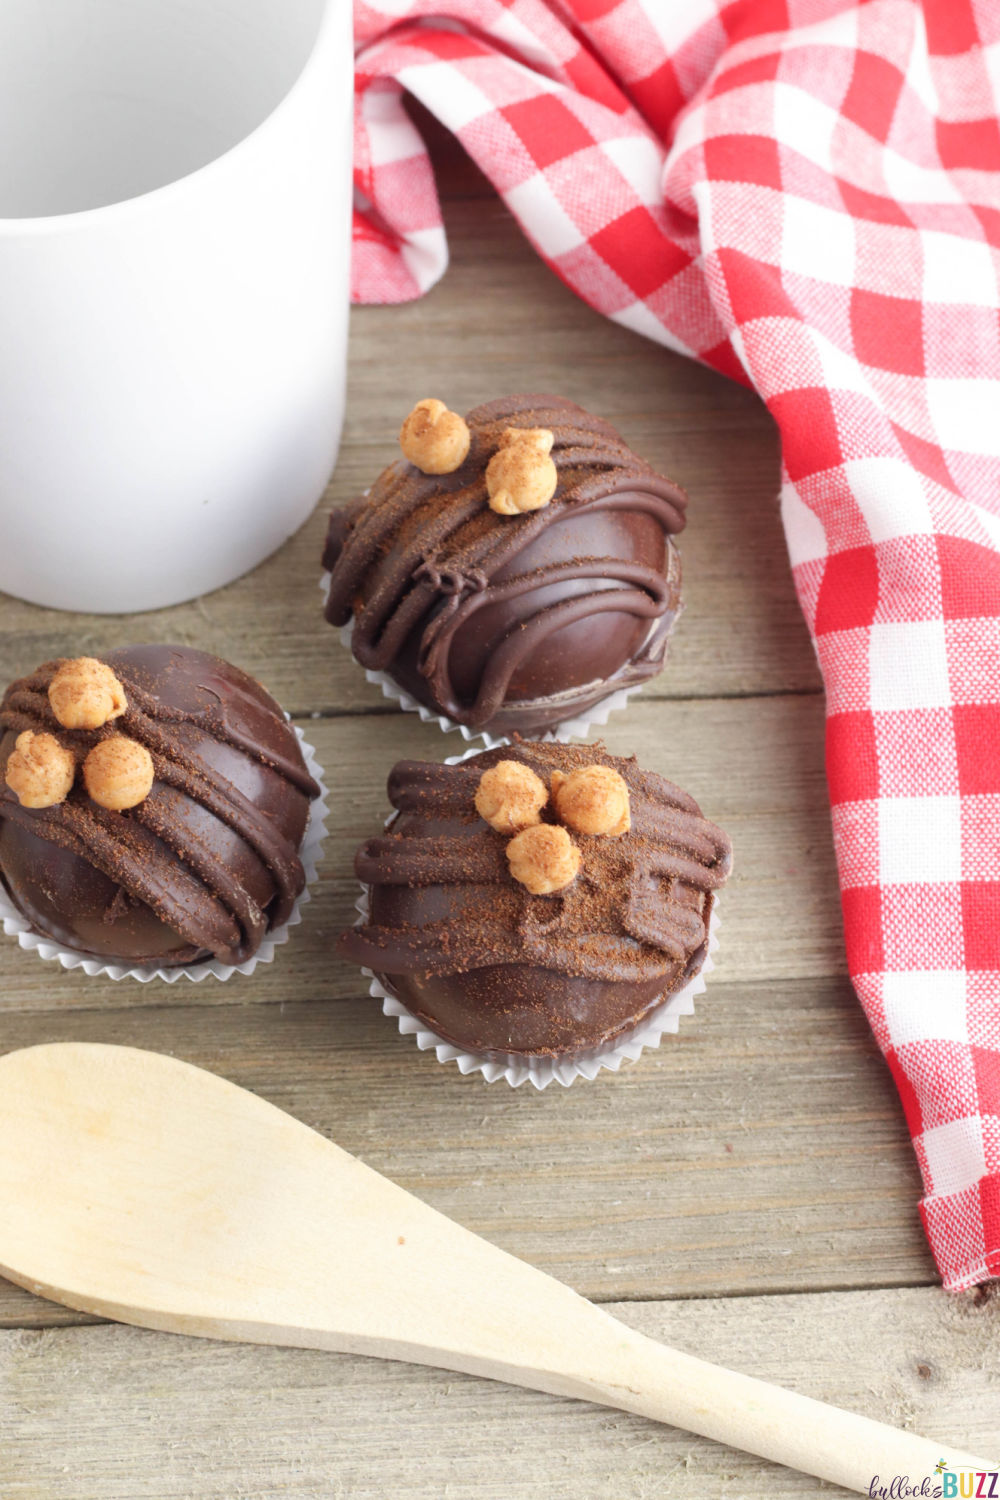 These cold-weather confections are similar to hot cocoa bombs but filled with espresso instead for a mind-blowingly scrumptious cup of caramel mocha coffee. Get this Caramel Mocha Coffee Bomb recipe on the Bullock's Buzz blog! #coffeebomb #espressobomb #recipes #caramelmocha #coffee